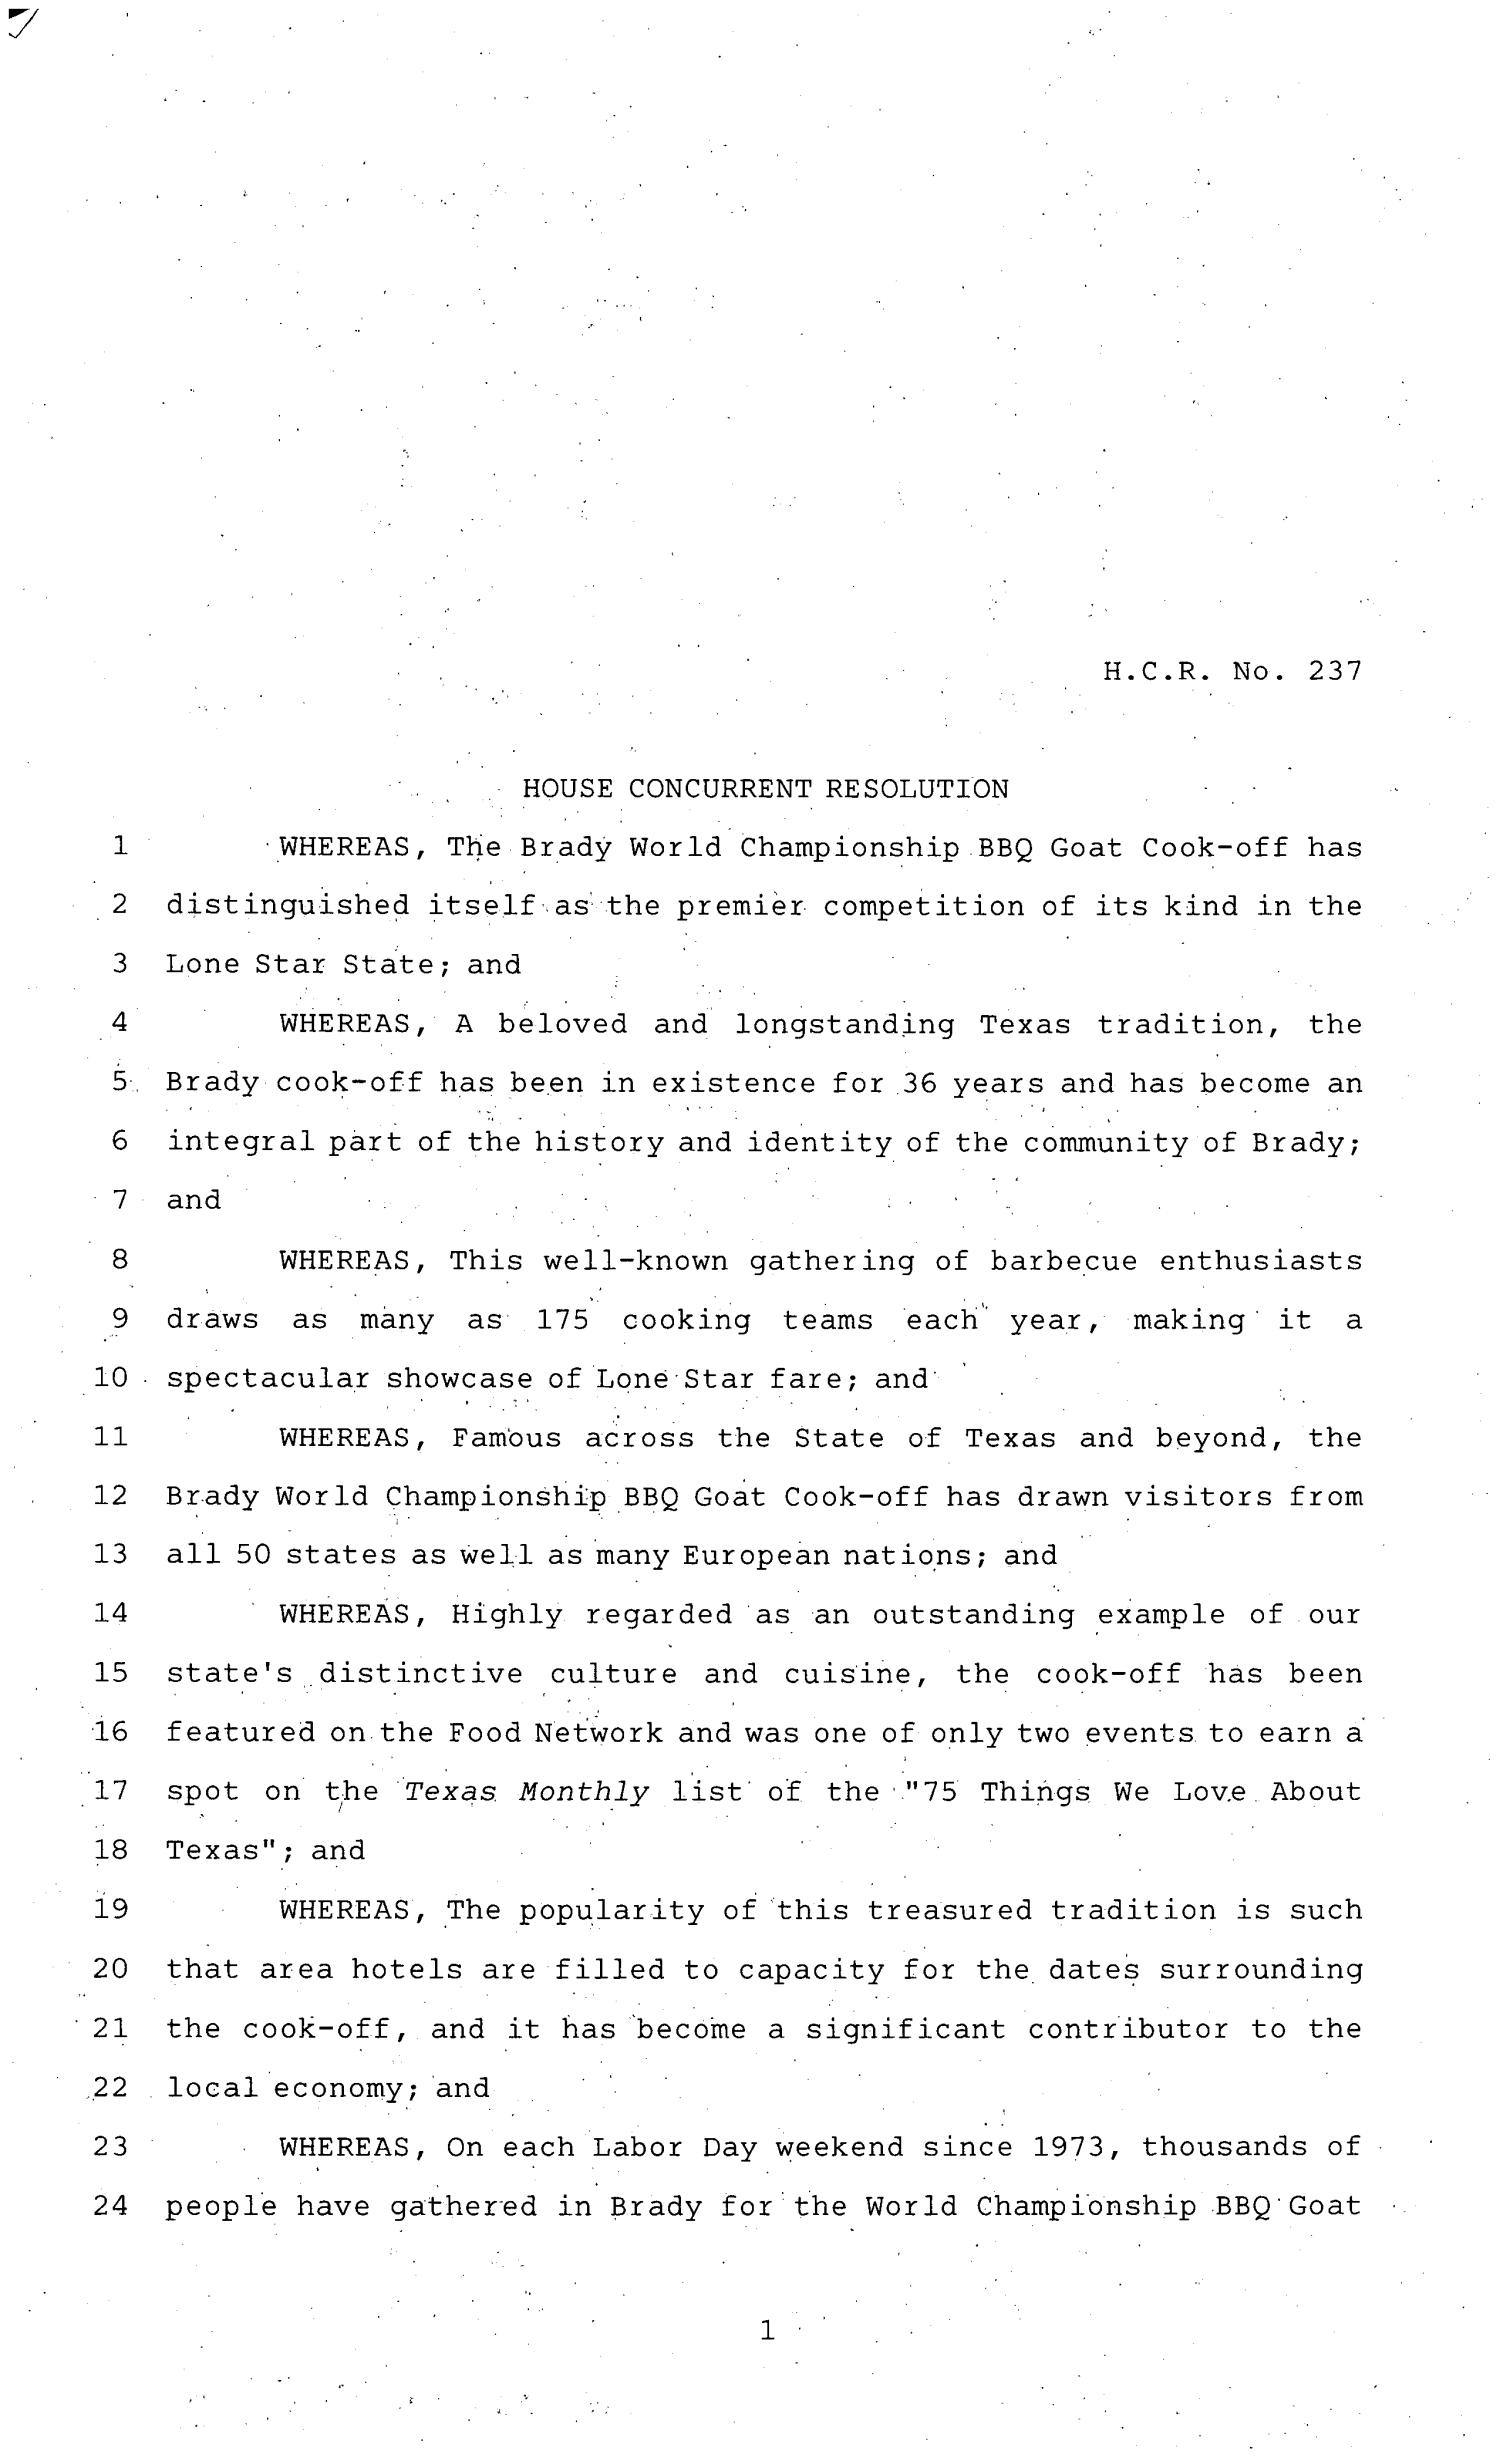 81st Texas Legislature, House Concurrent Resolution, House Bill 237                                                                                                      [Sequence #]: 1 of 3